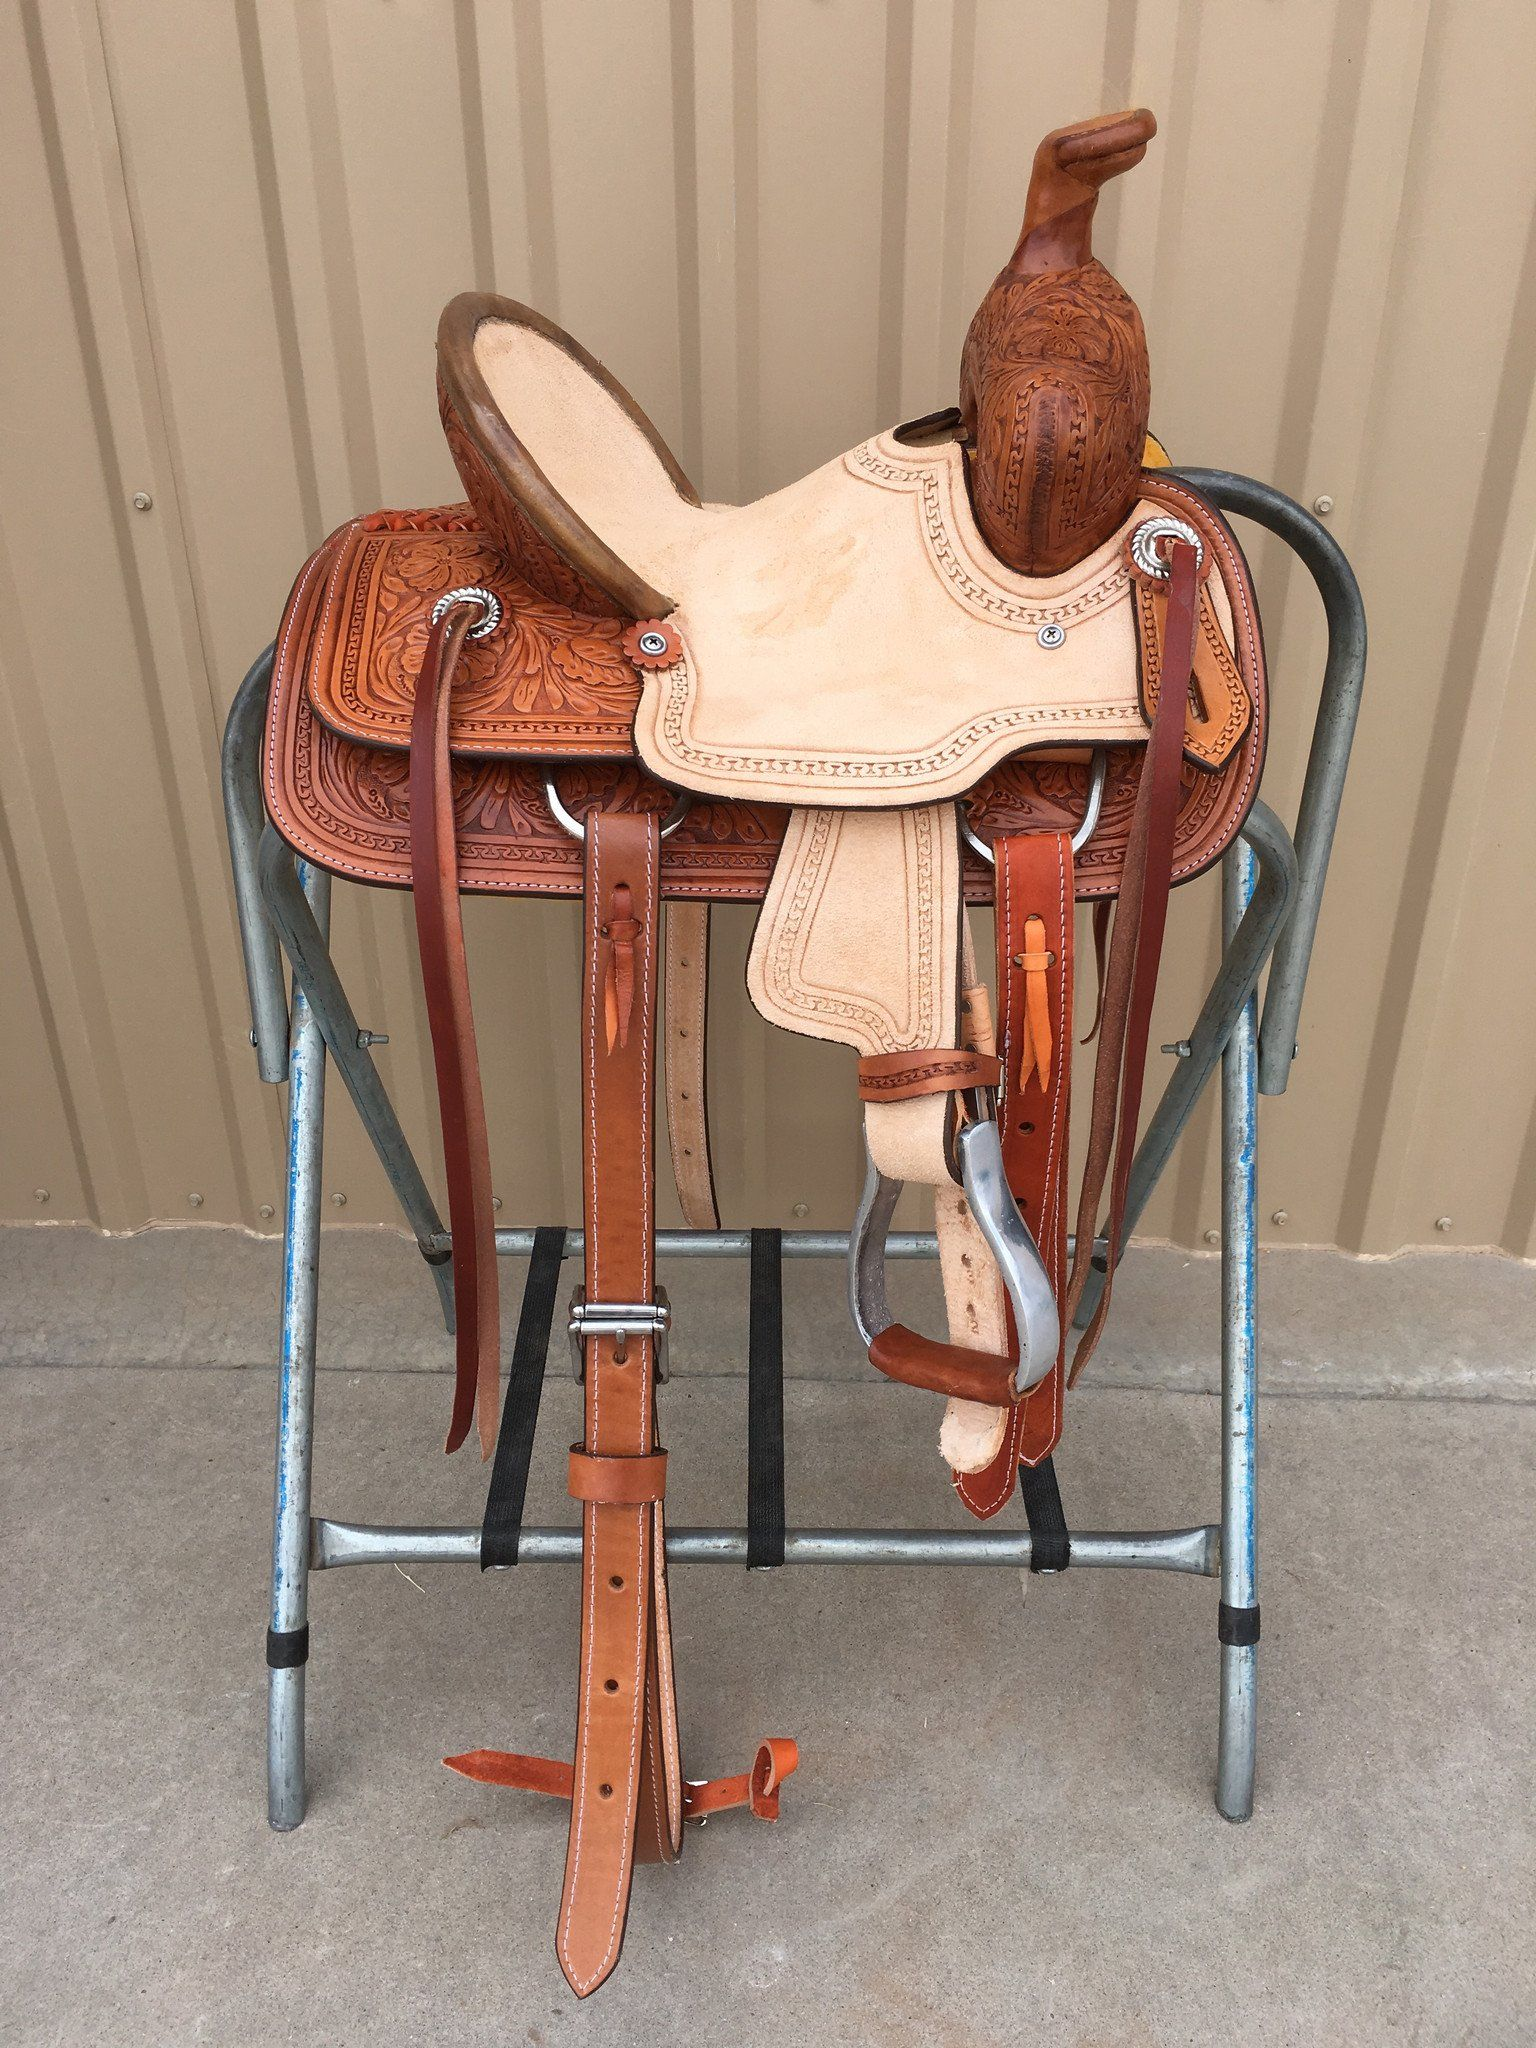 Csy 701b 10 Inch Corriente Youth Kids Buckaroo Association Barrel Racing Saddles Barrel Saddle Saddles